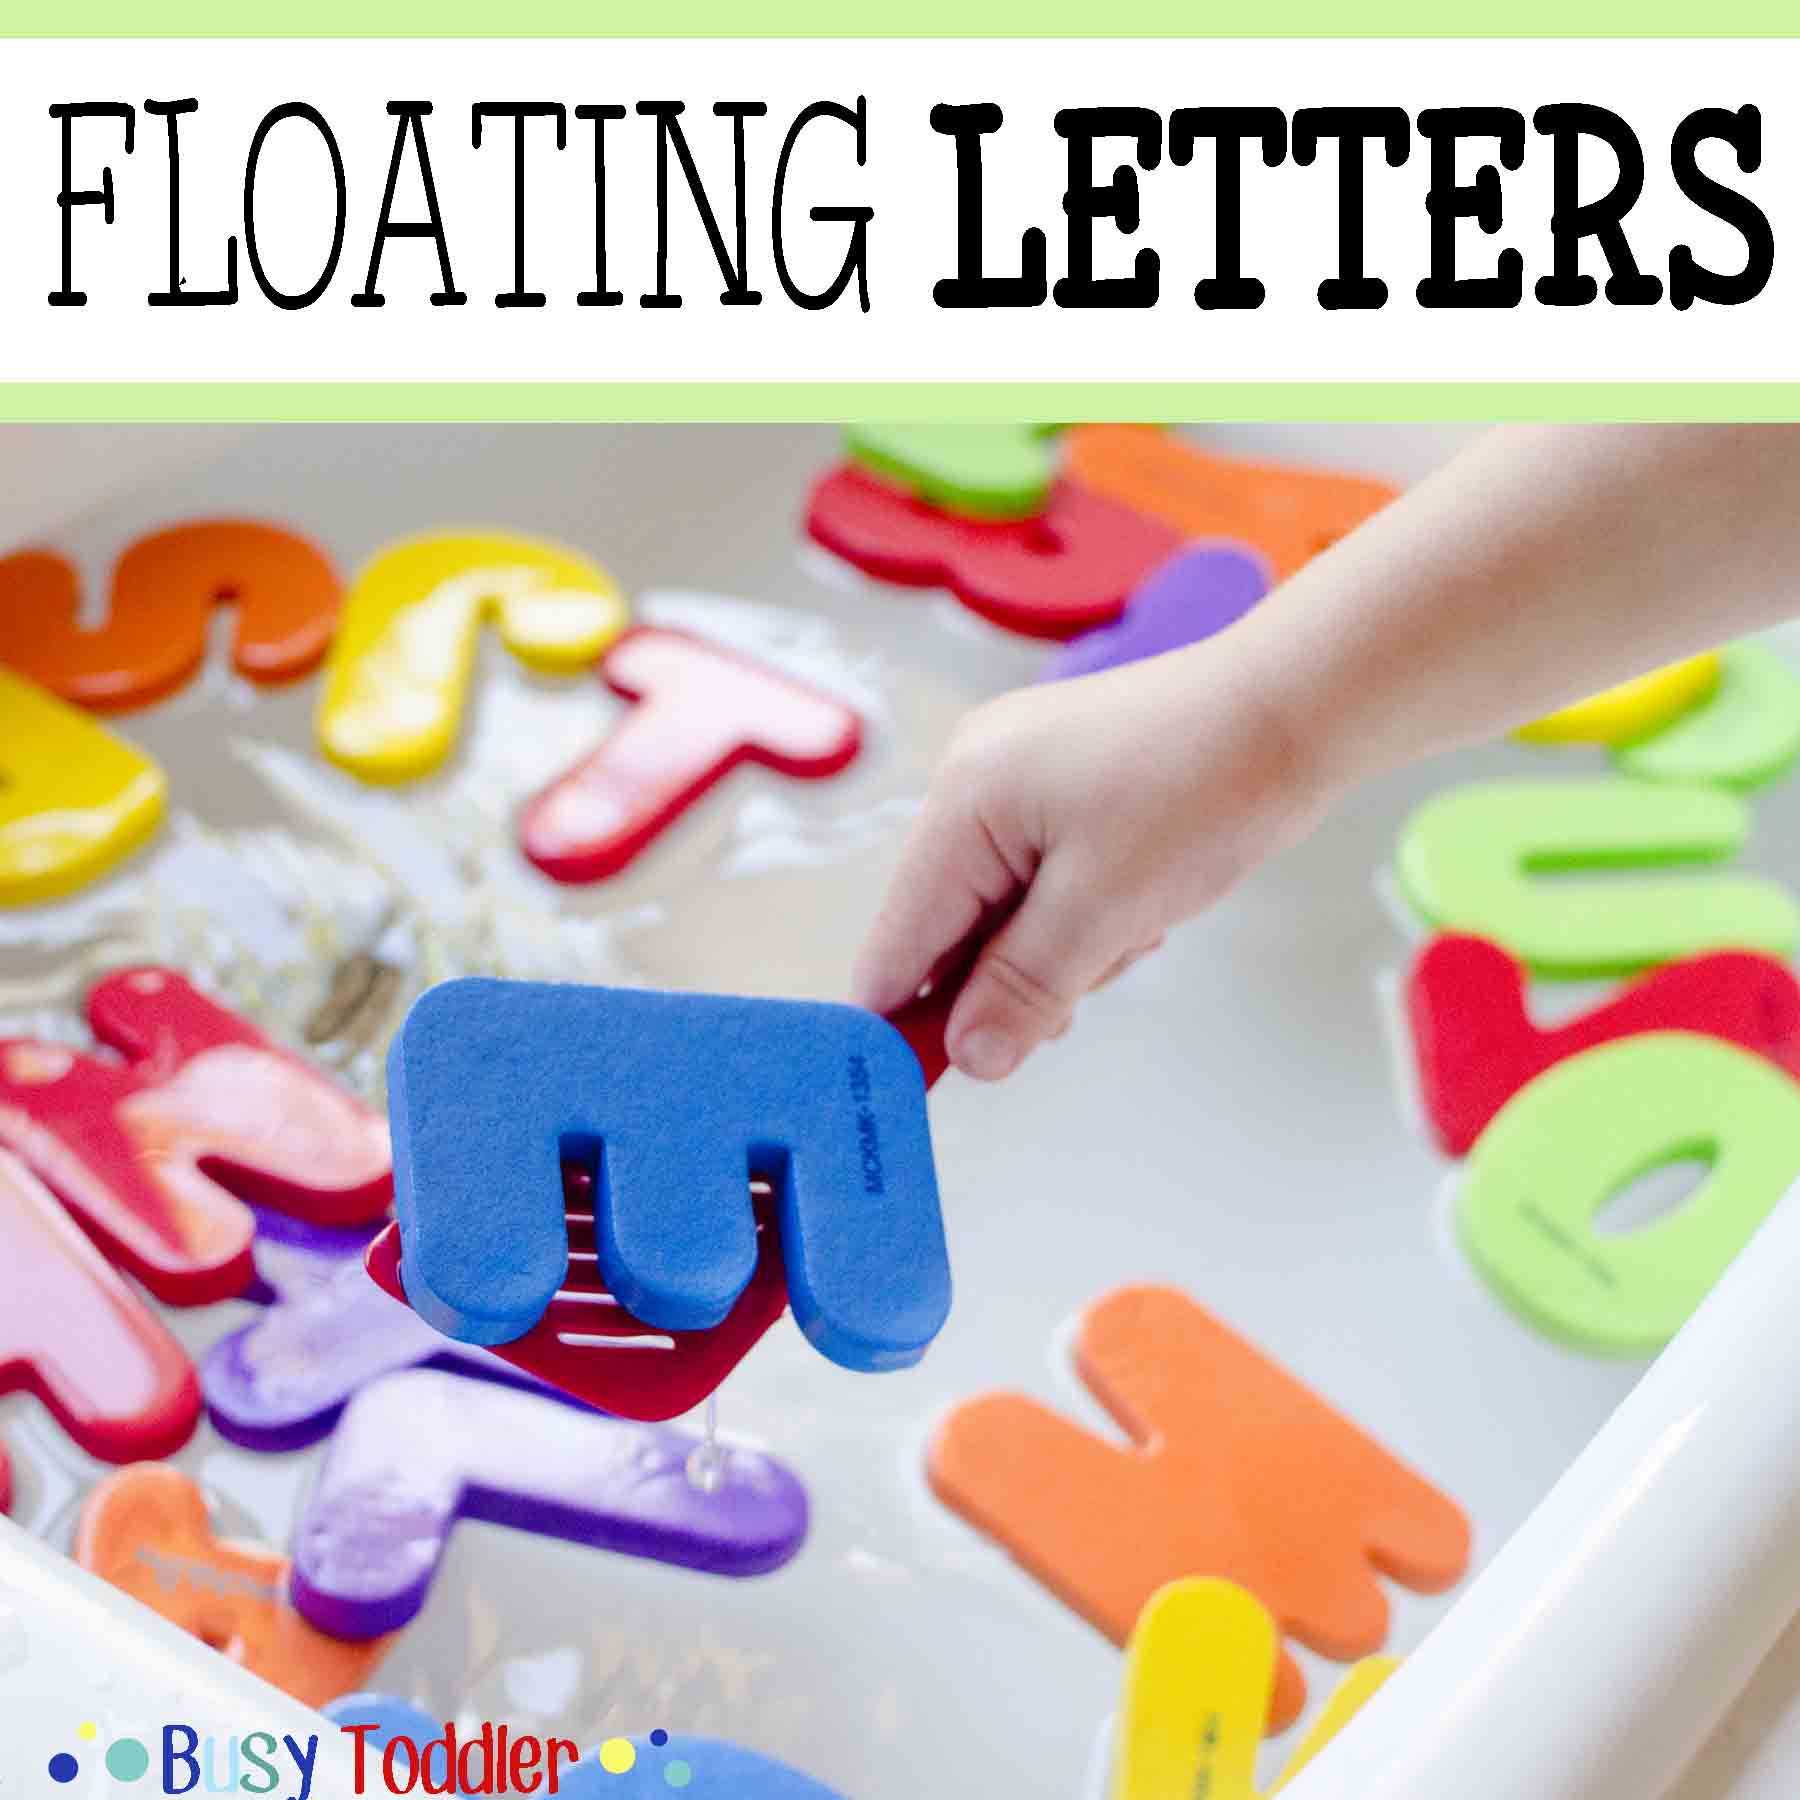 Floating Letters